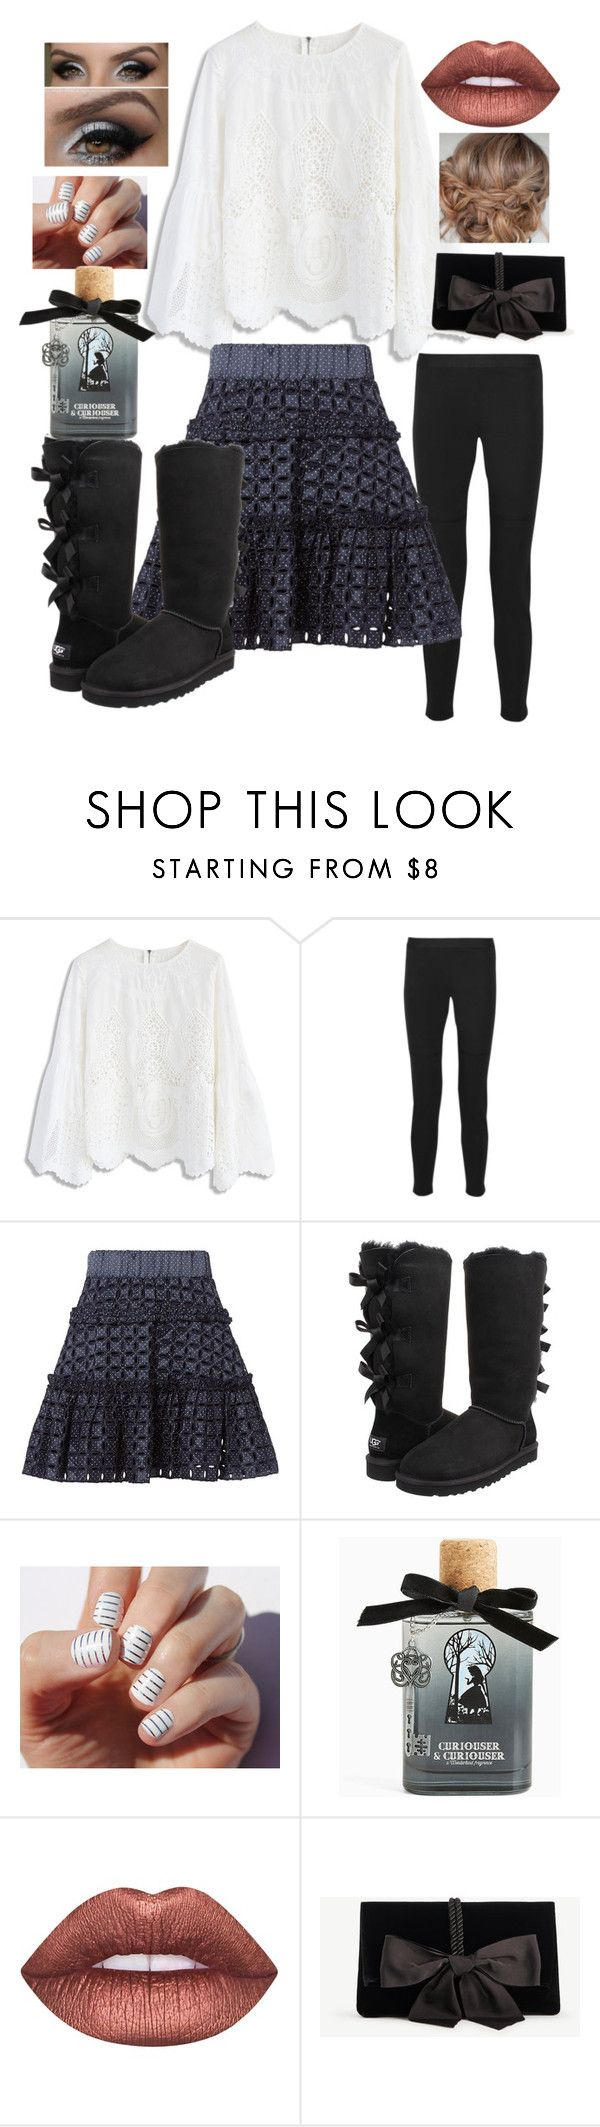 """""""Feminine and Pretty"""" by snowflakeunique ❤ liked on Polyvore featuring Chicwish, 10 Crosby Derek Lam, Alexis, UGG Australia, SoGloss, Torrid, Lime Crime and Ann Taylor"""